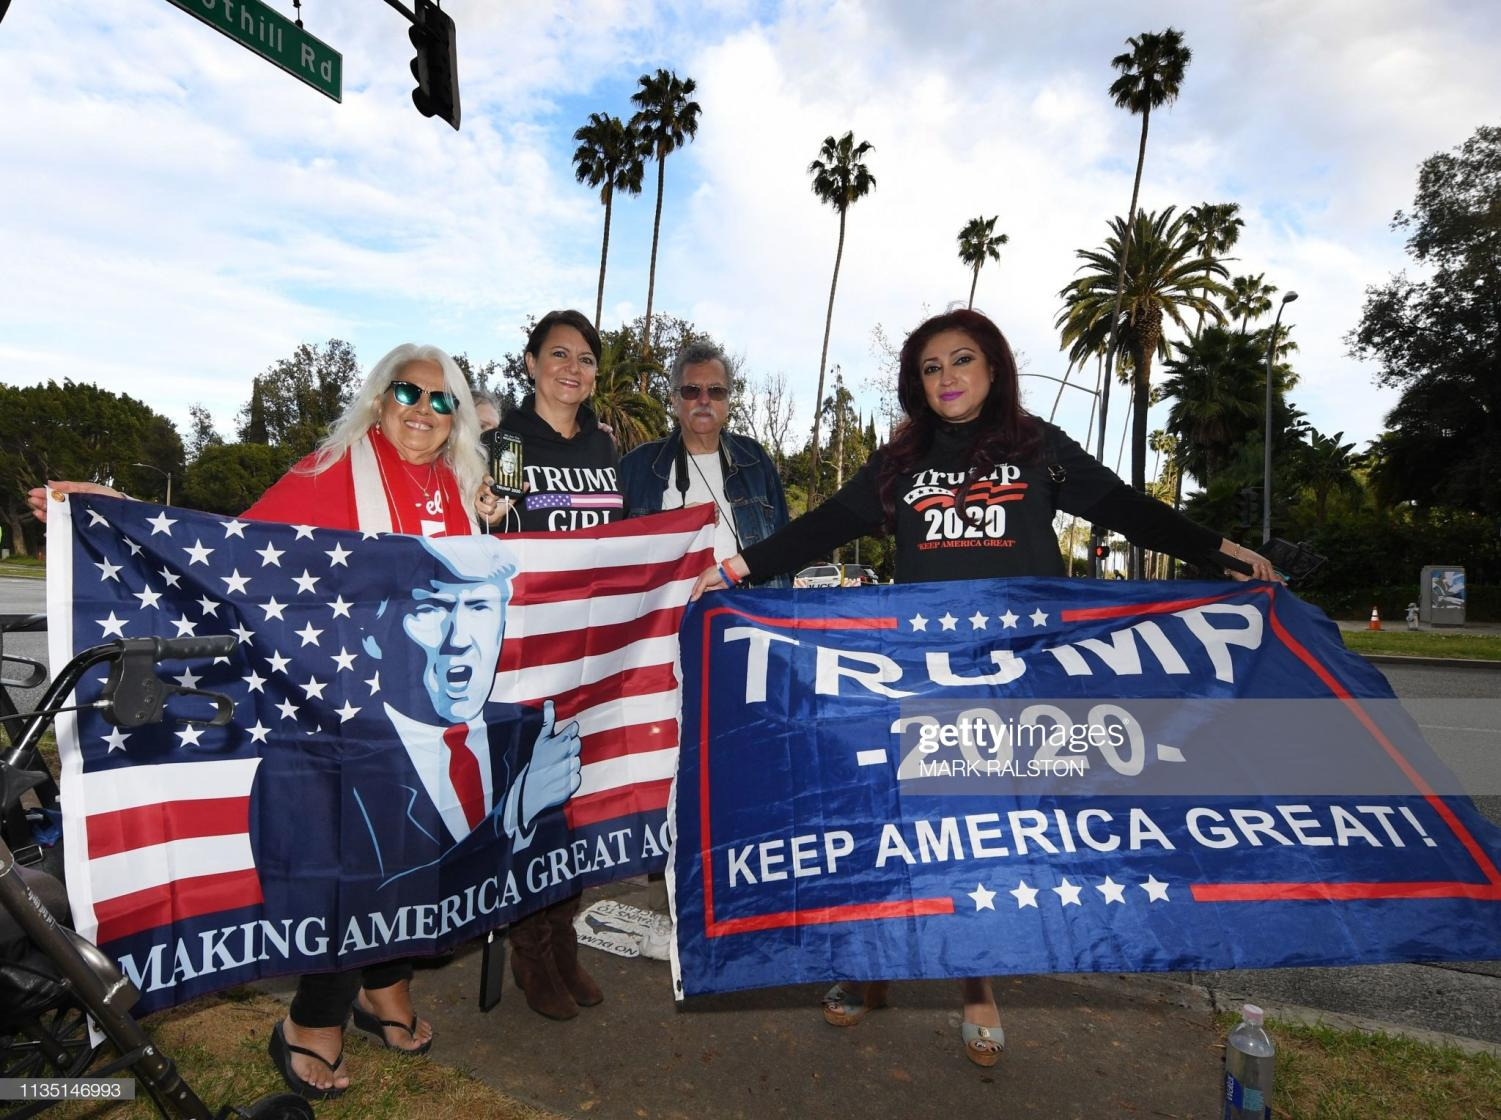 TOPSHOT - Trump supporters pose for photos on Sunset Blvd as the US president attends a fundraiser nearby, in Beverly Hills, California, on April 5, 2019. - US President Donald Trump visited the Mexican border on April 5 to deliver a message to would-be illegal immigrants and asylum seekers: don't bother coming.